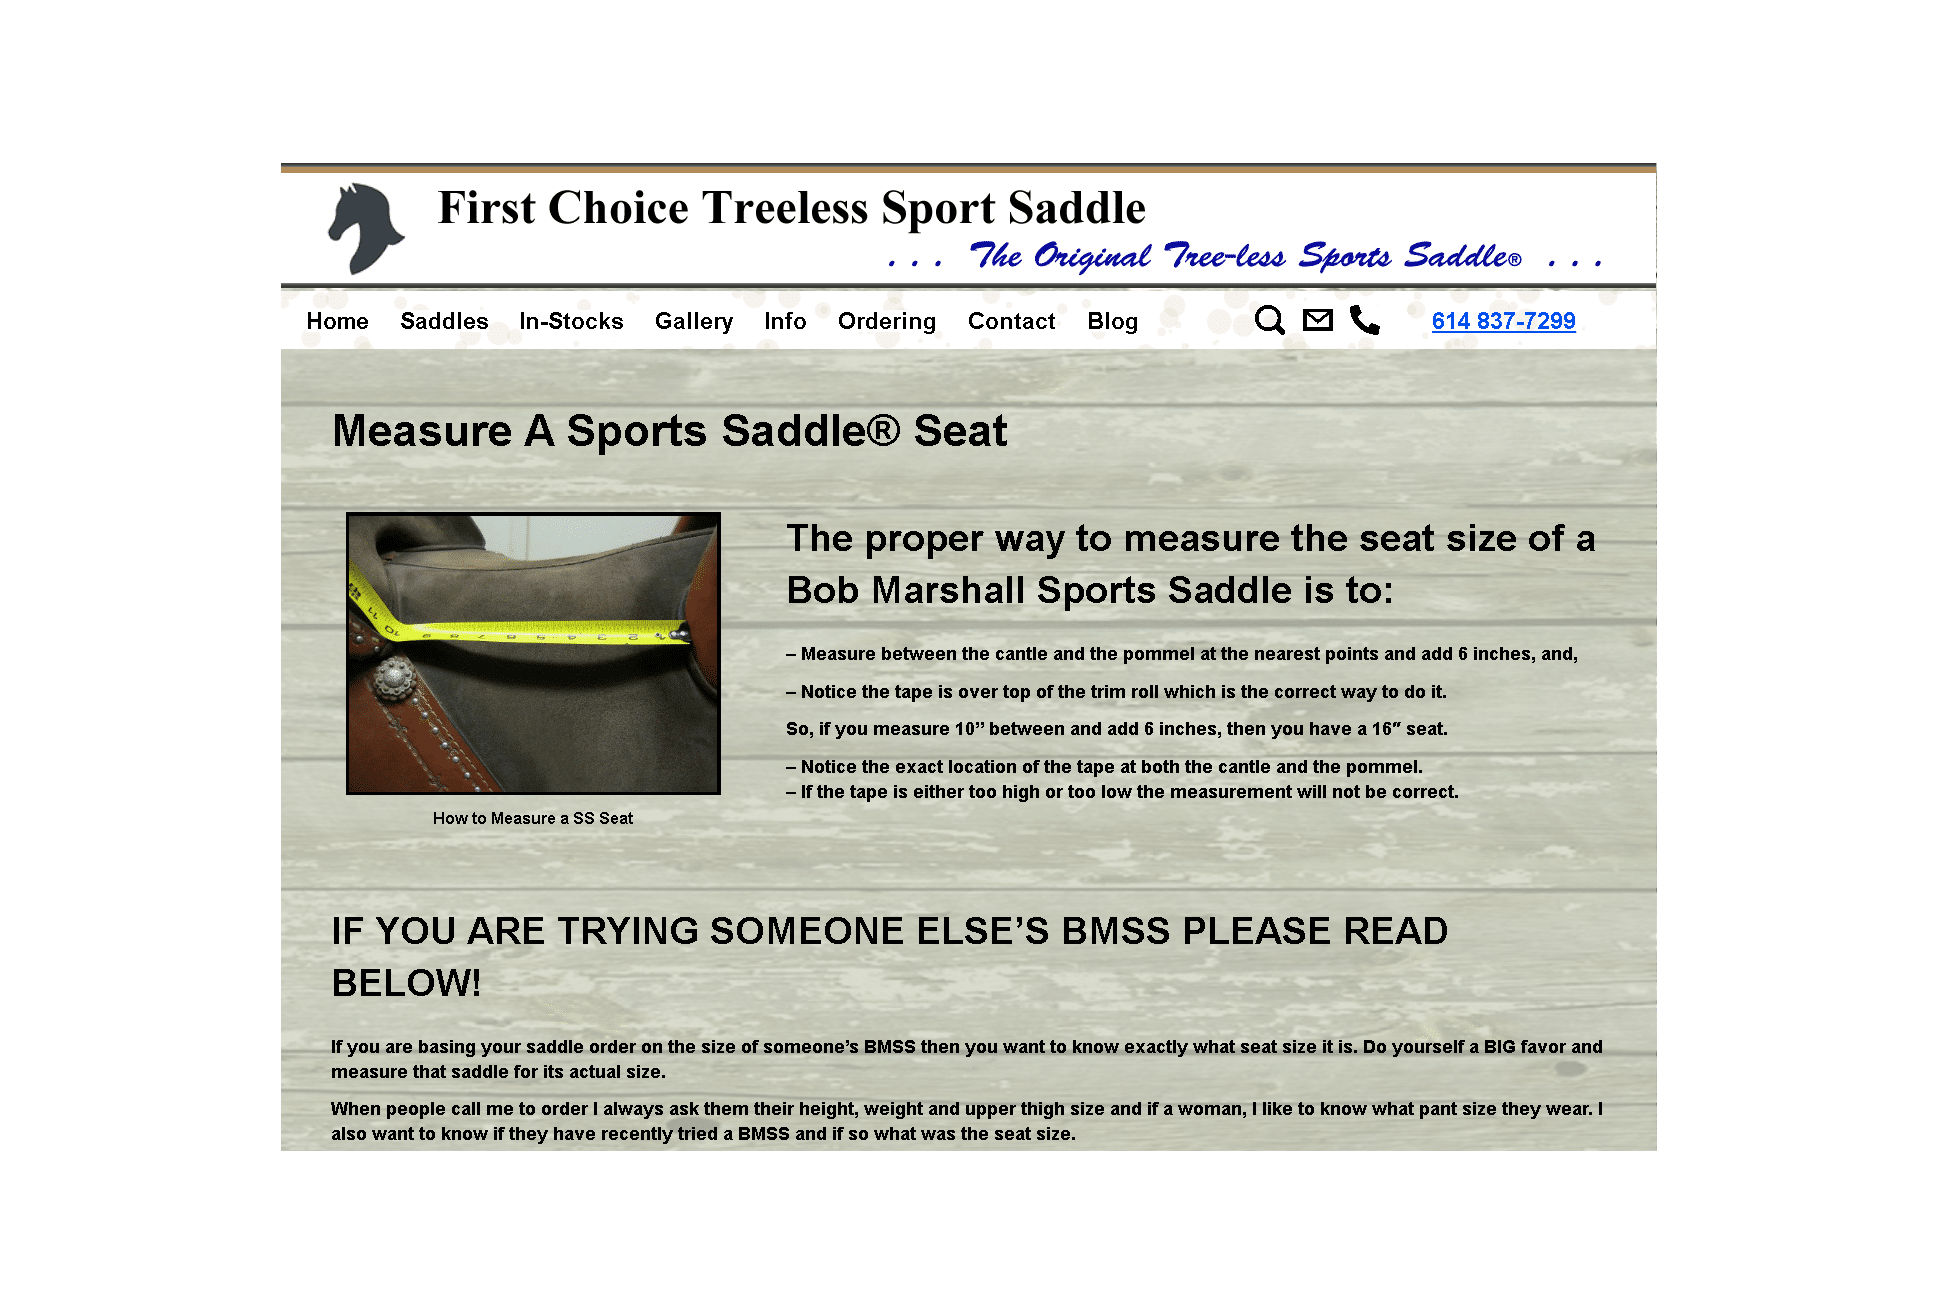 Sportsaddle.com Blog - Customer feedback featuring Bob Marshall Sports Saddles